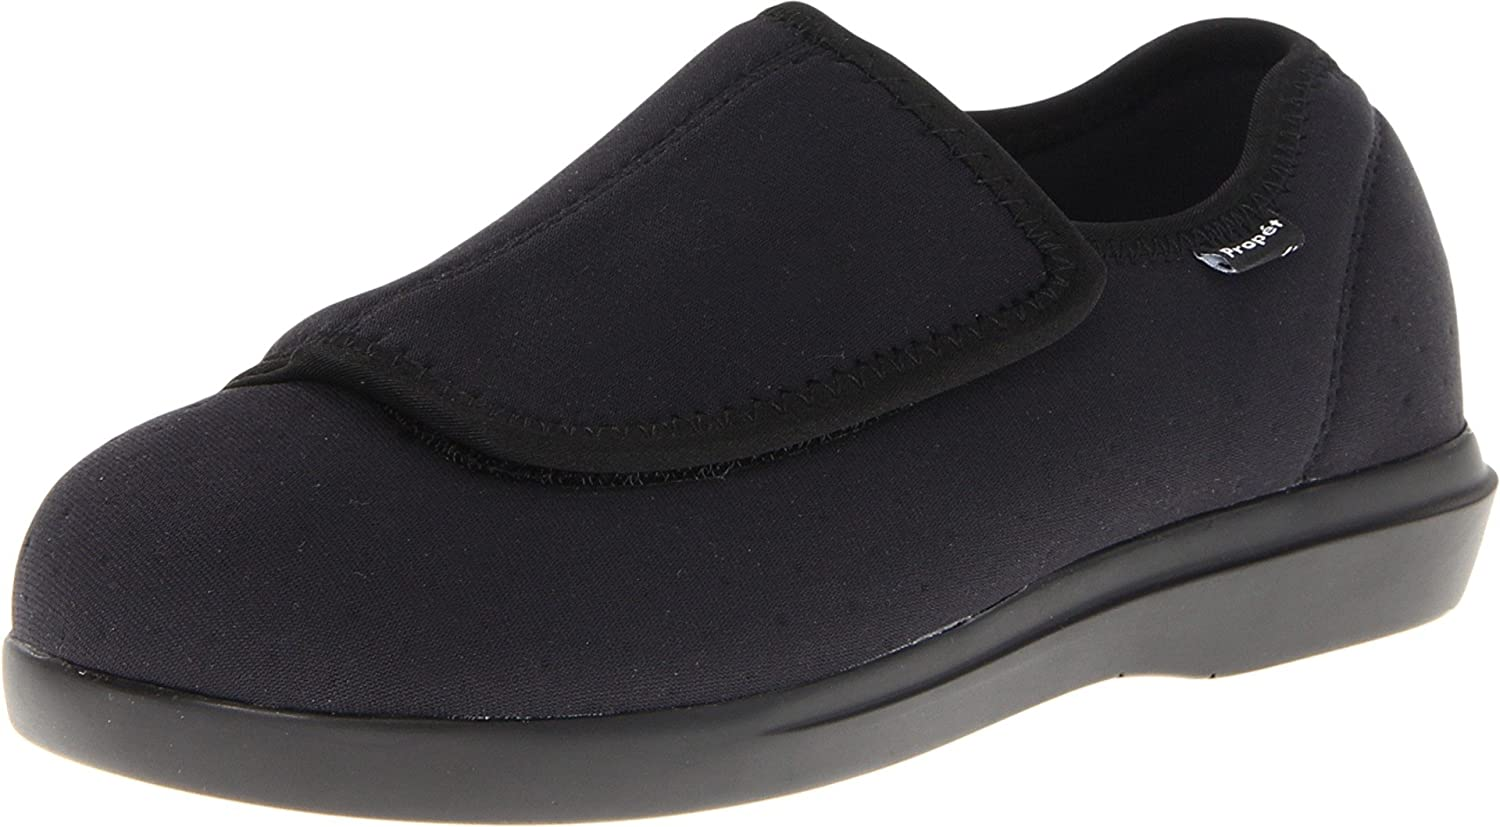 Propét Women's Cush N Foot Slipper B007M08GQG 9.5 X (2E) US|Black